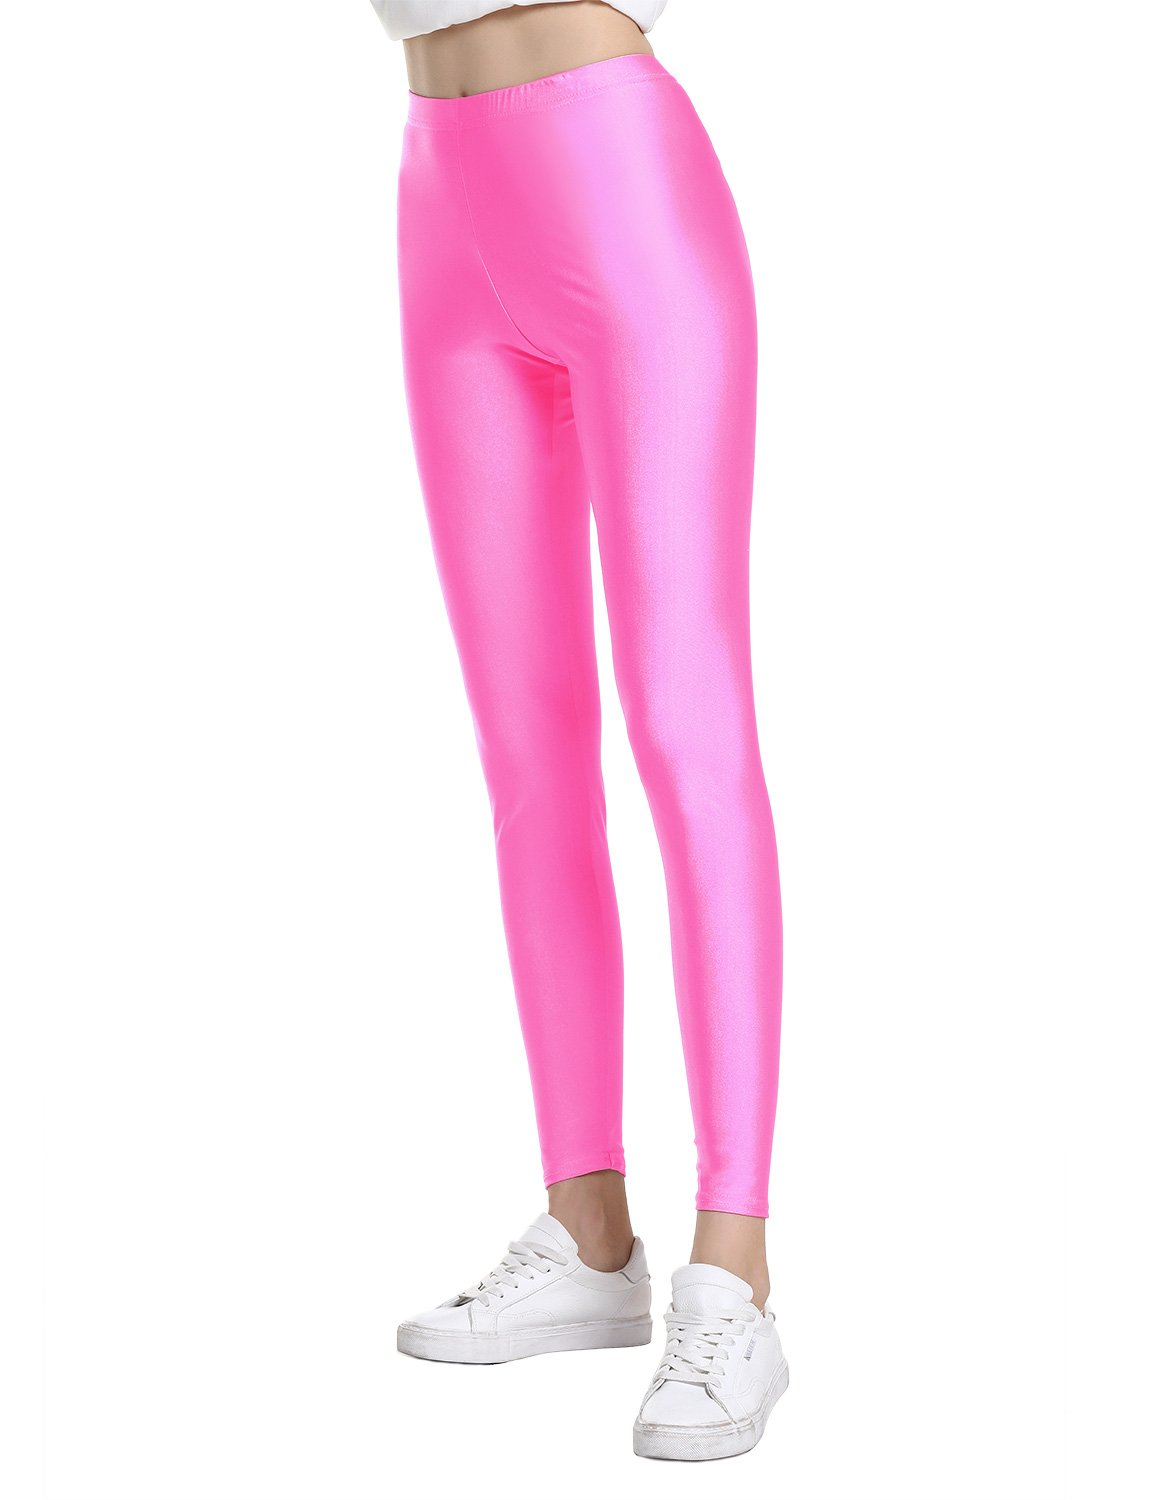 ZAN.STYLE Women's Soft Stretch High Waist Leggings Full Length Yoga Pants Rose Red Small